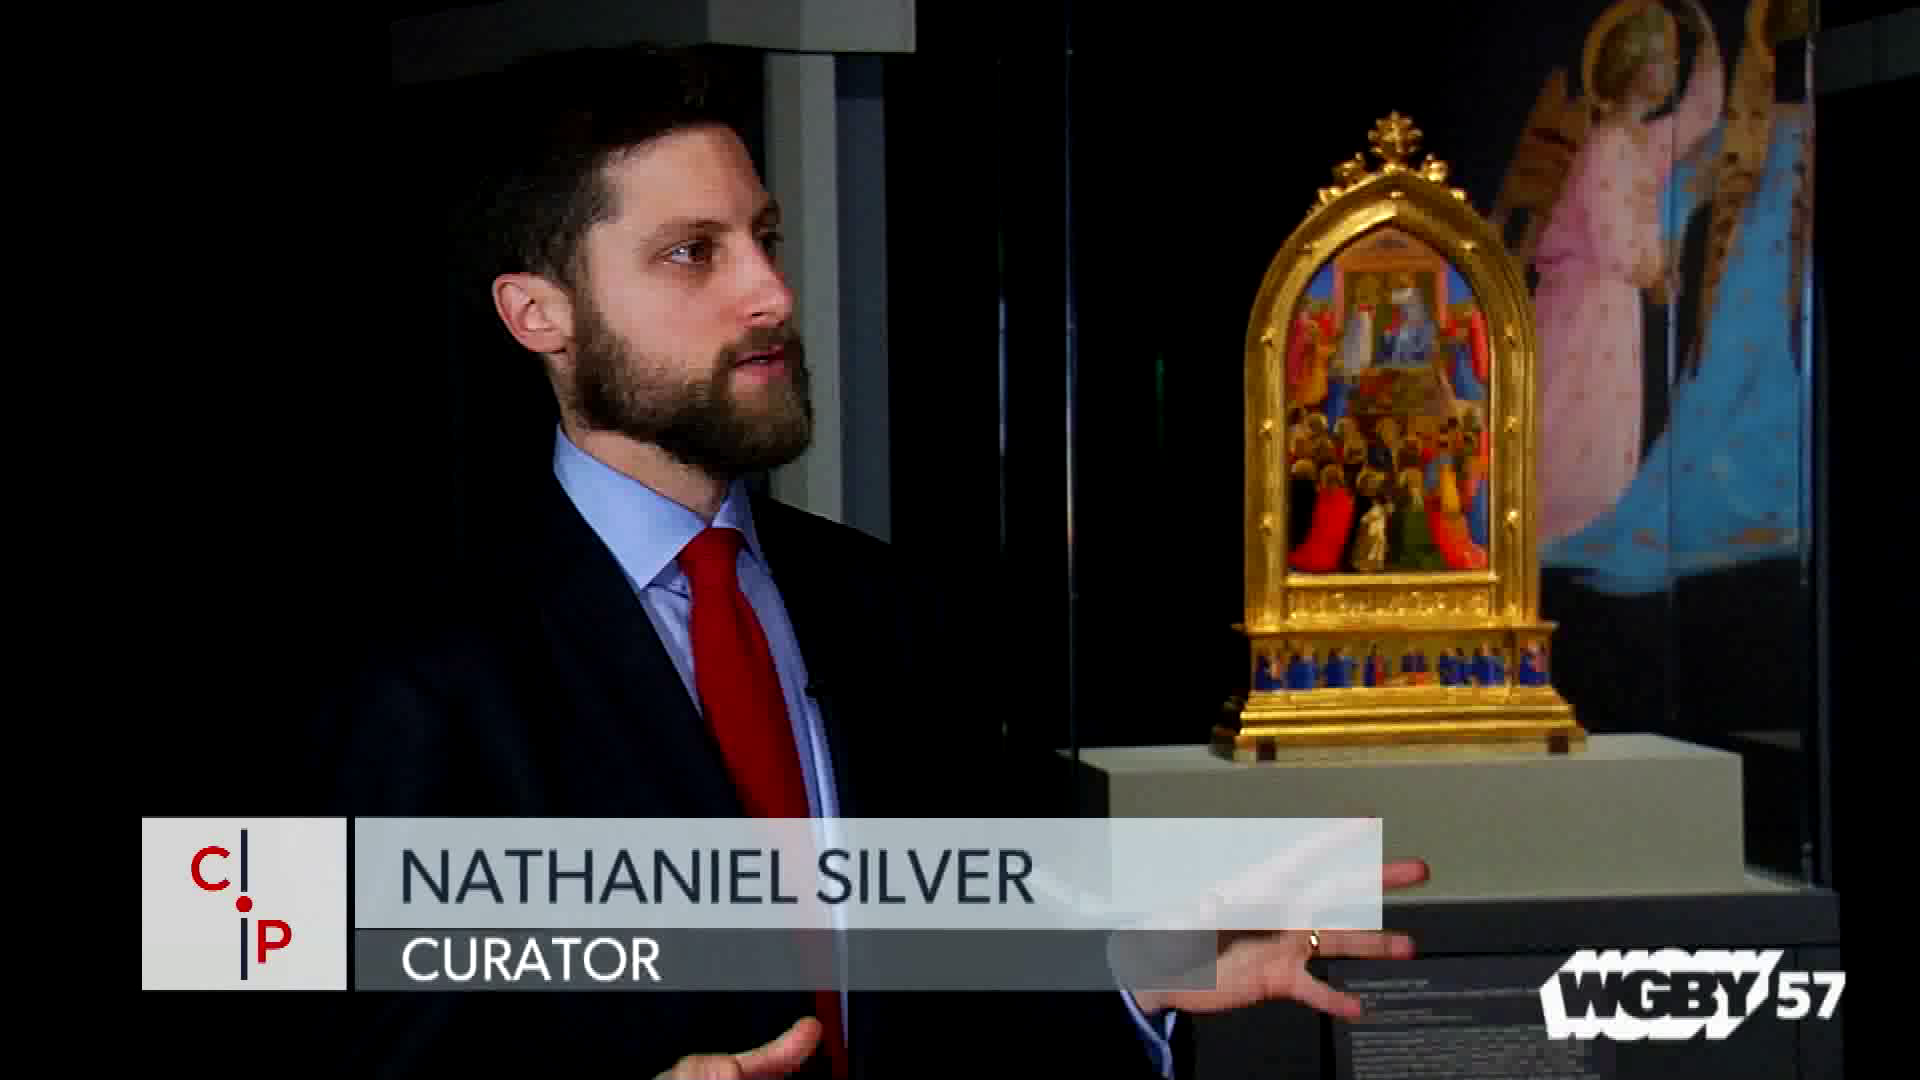 Renaissance painter Fra Angelico has been a favorite of Popes from the 1400s to John Paul the Second. For the first time in 200 years, four of his most significant works are reunited at the Isabella Stewart Gardner Museum in Boston. Connecting Point's Jared Bowen takes us on a trip to see the exhibit.